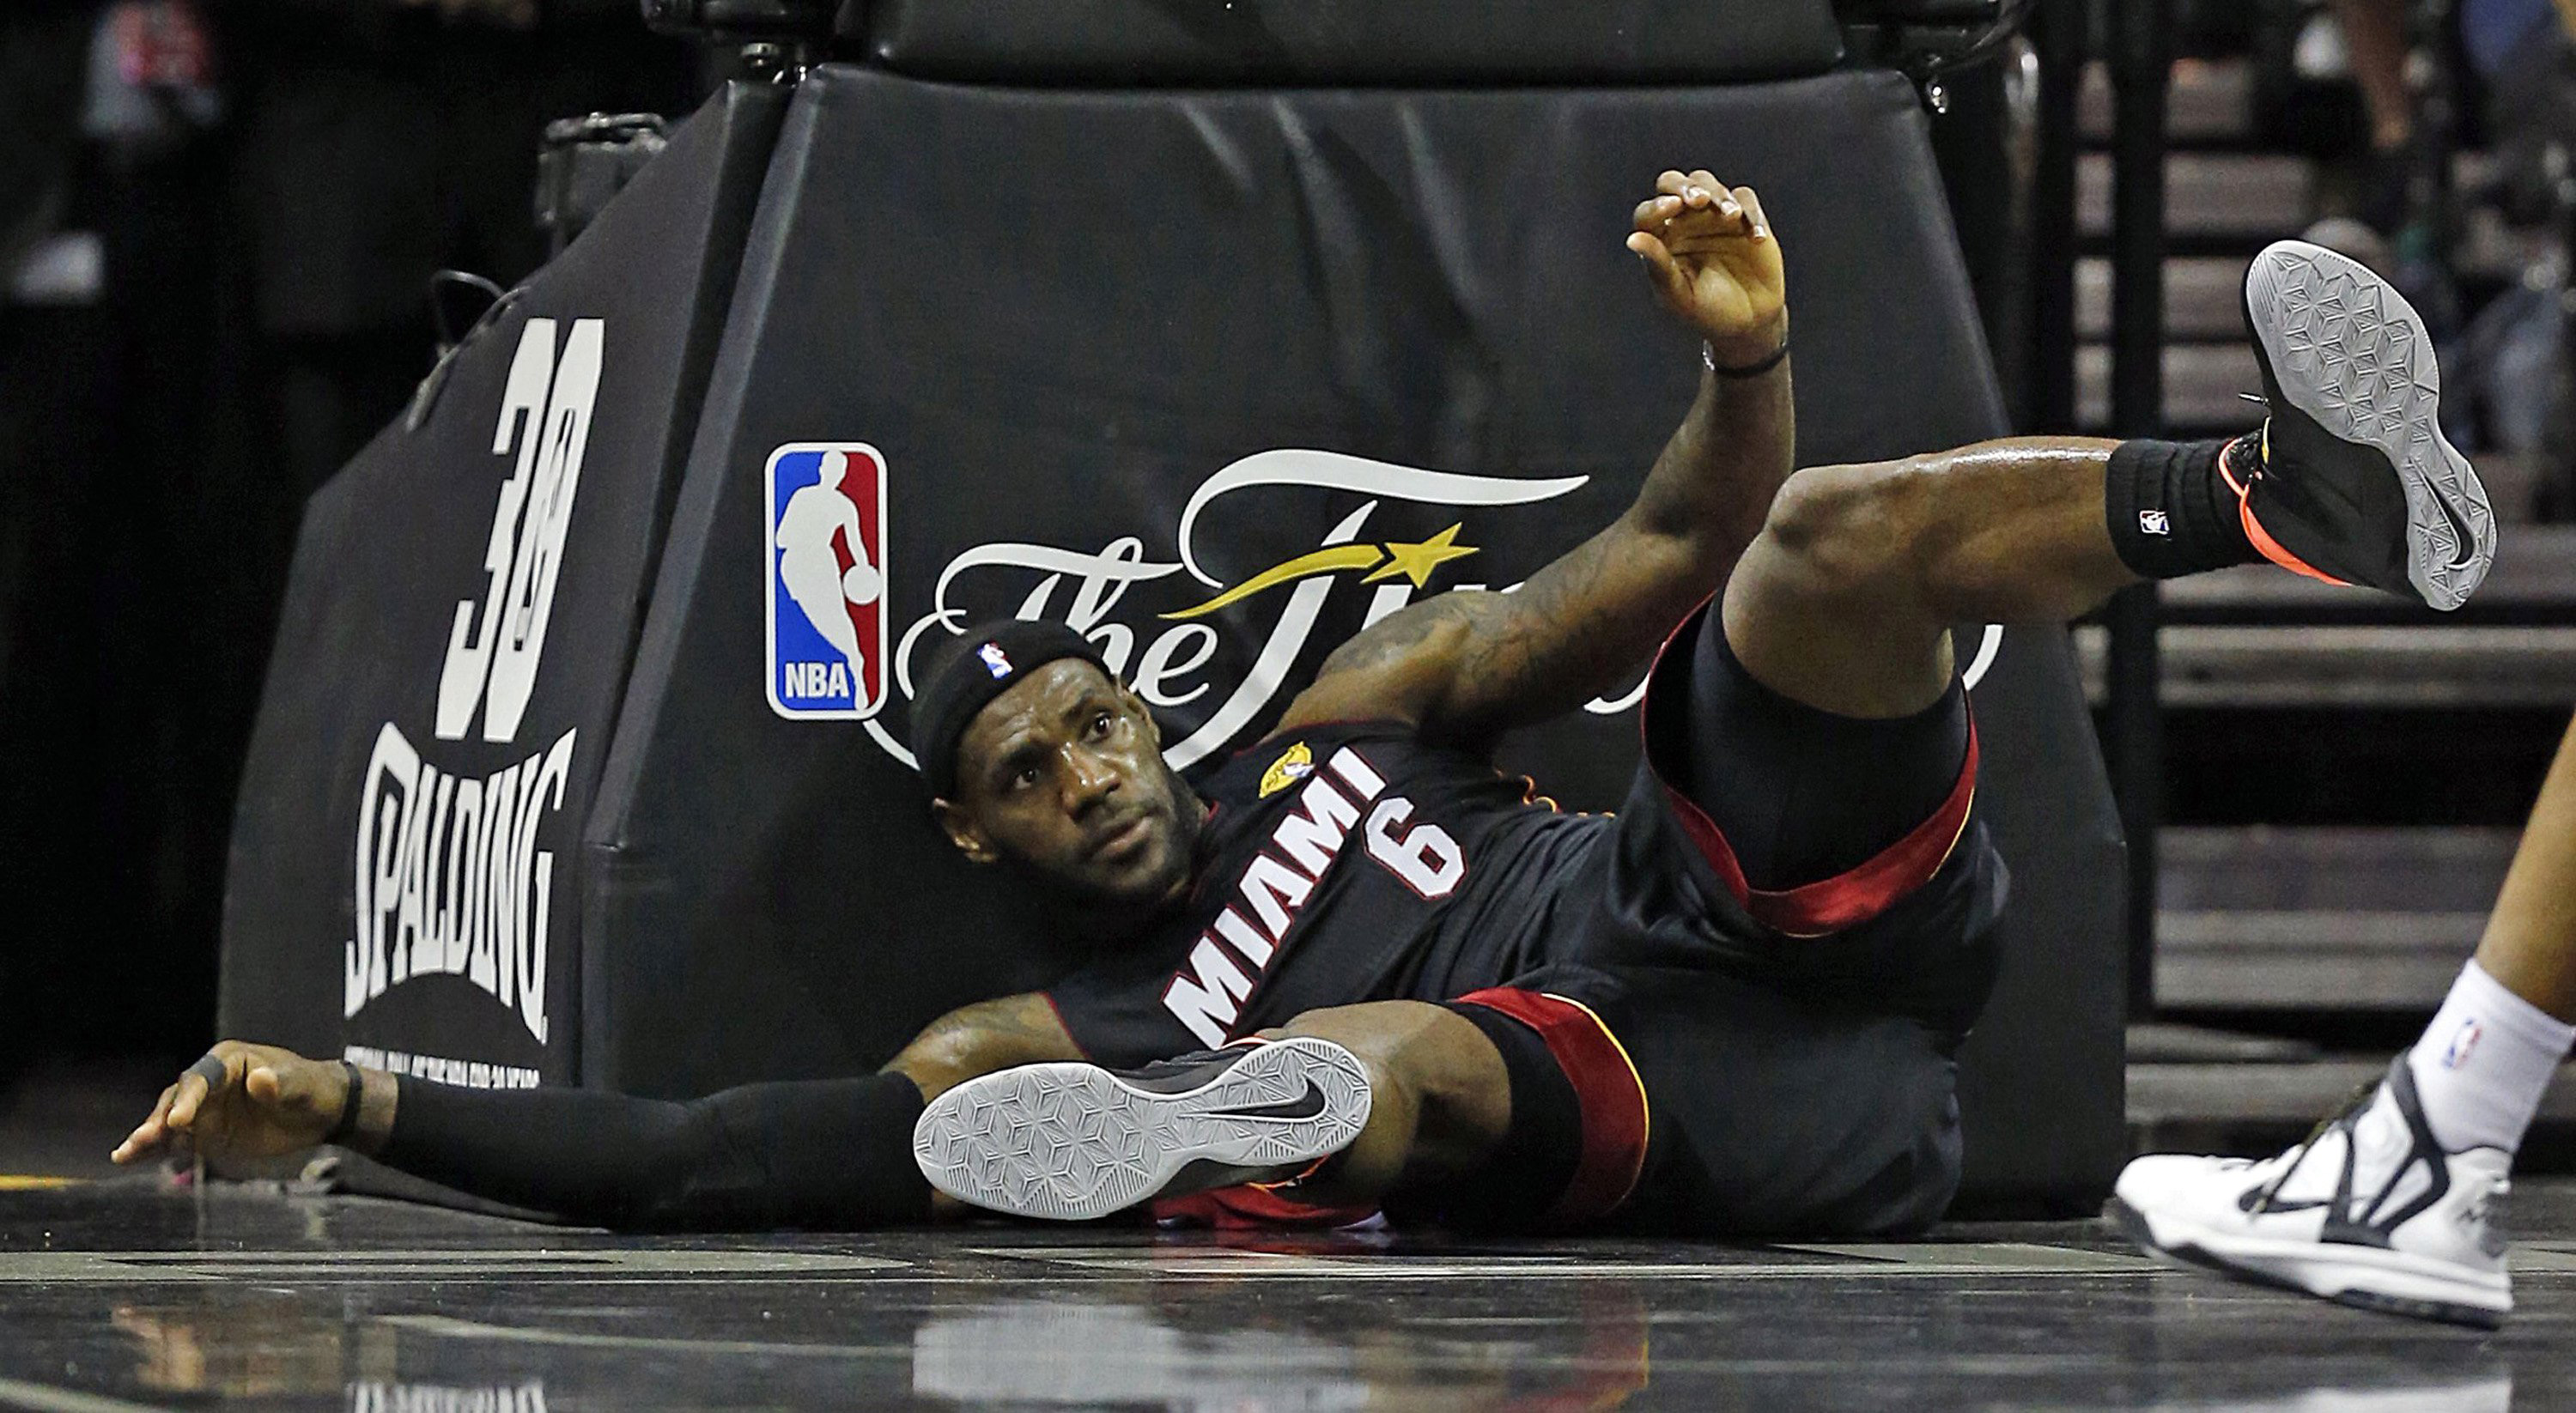 Miami Heat's LeBron James falls to the court during the first quarter in Game 2 of the NBA Finals in San Antonio on June 8, 2014.